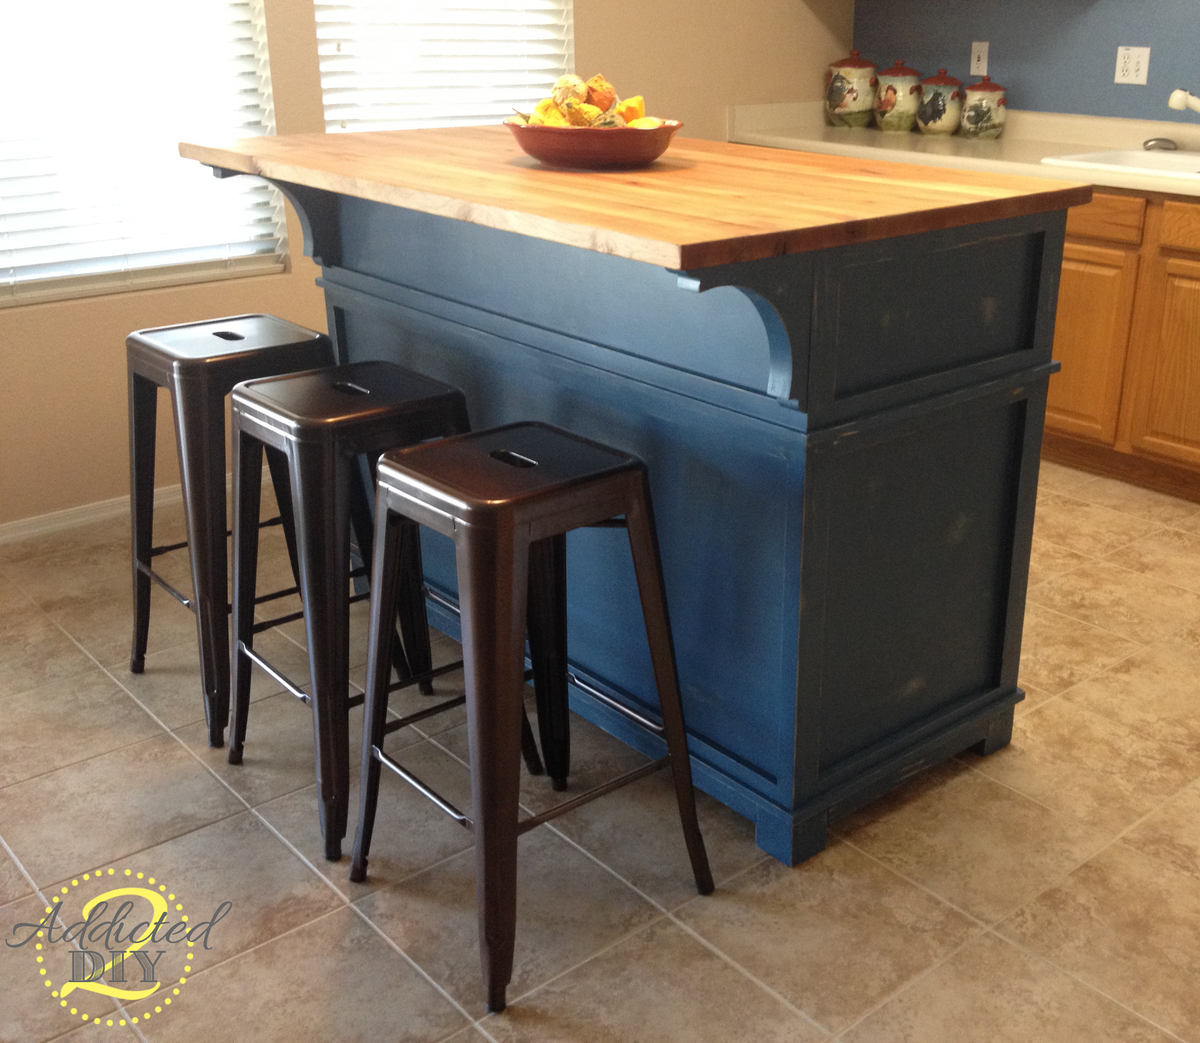 DIY Kitchen Island - DIY Projects